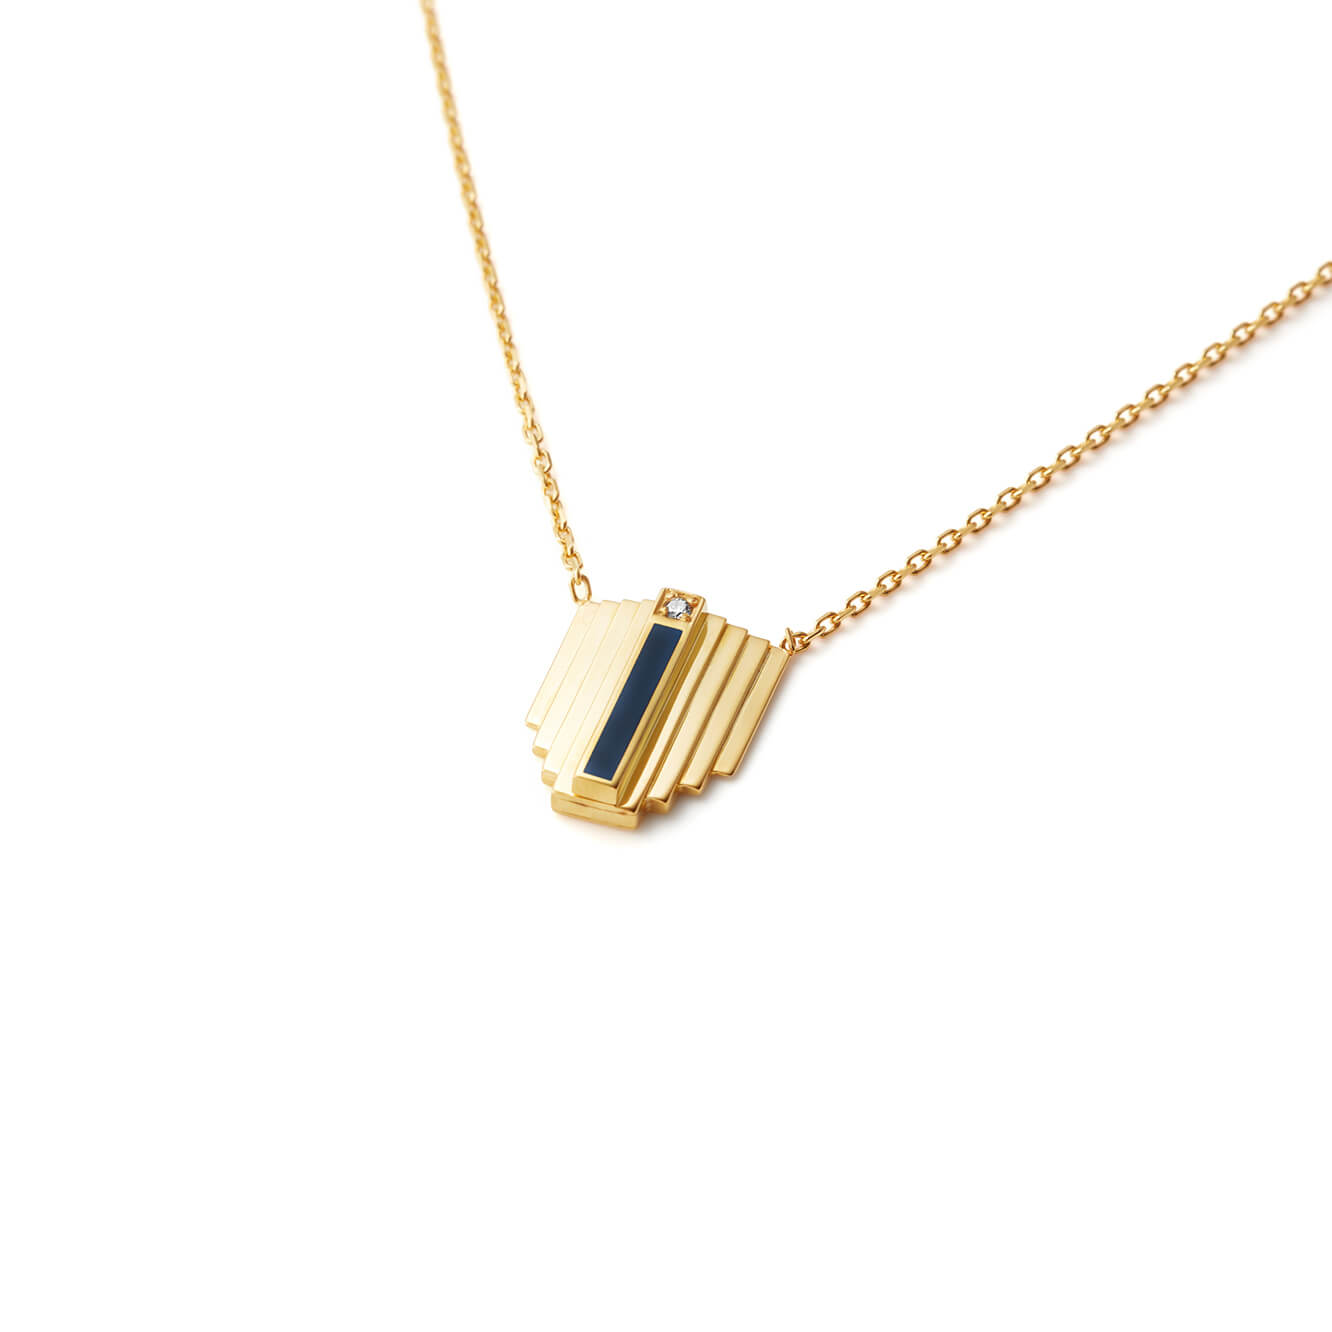 Dark Blue Corbusier Diamond Necklace | 18kt Gold Vermeil | Motley x Melis Goral | Product Shot 1